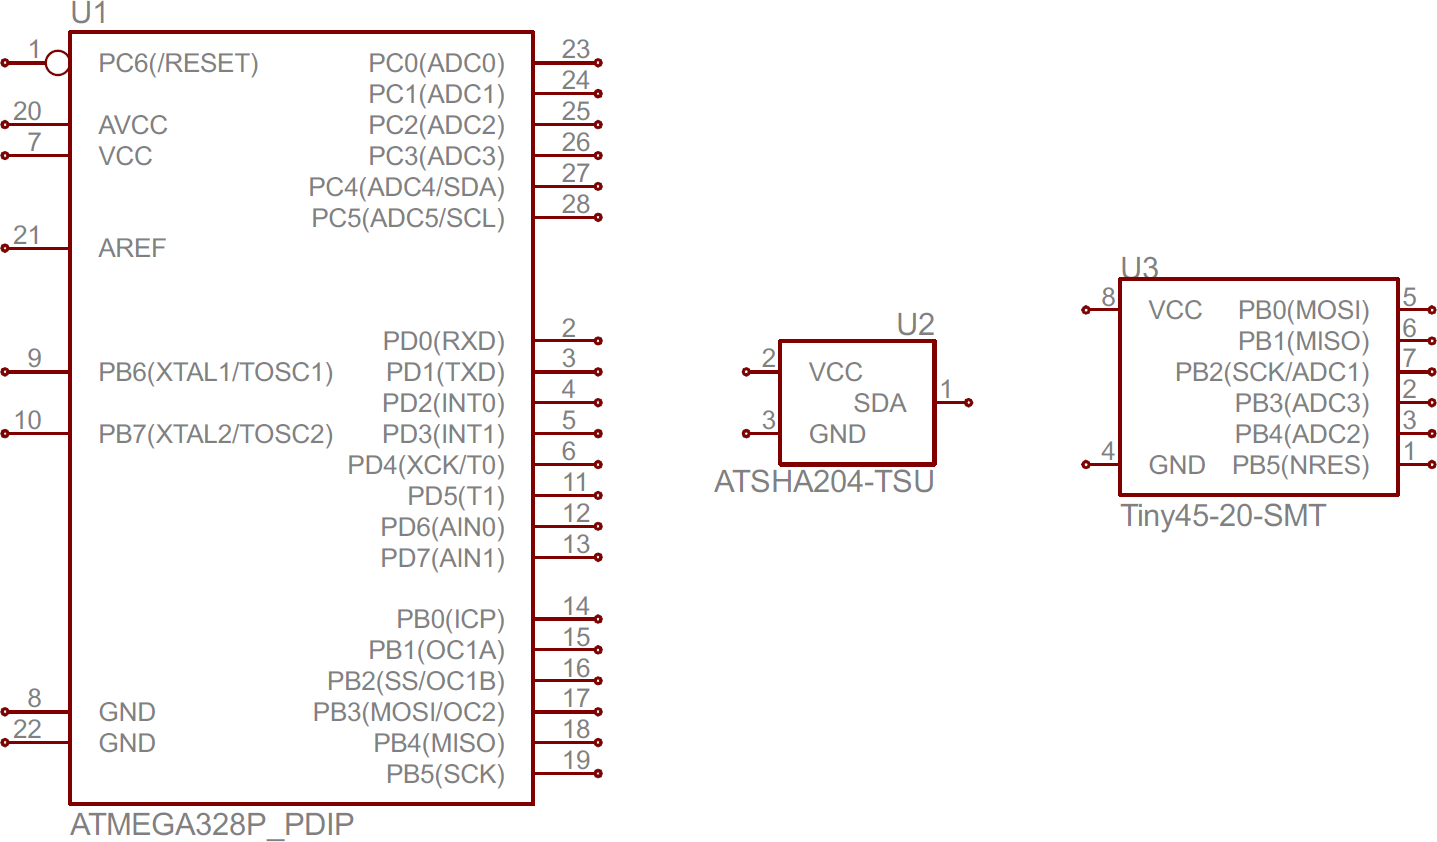 How To Read A Schematic Eagle Eye Wiring Diagram Atmega328 Atsha204 And Attiny45 Ic Symbols